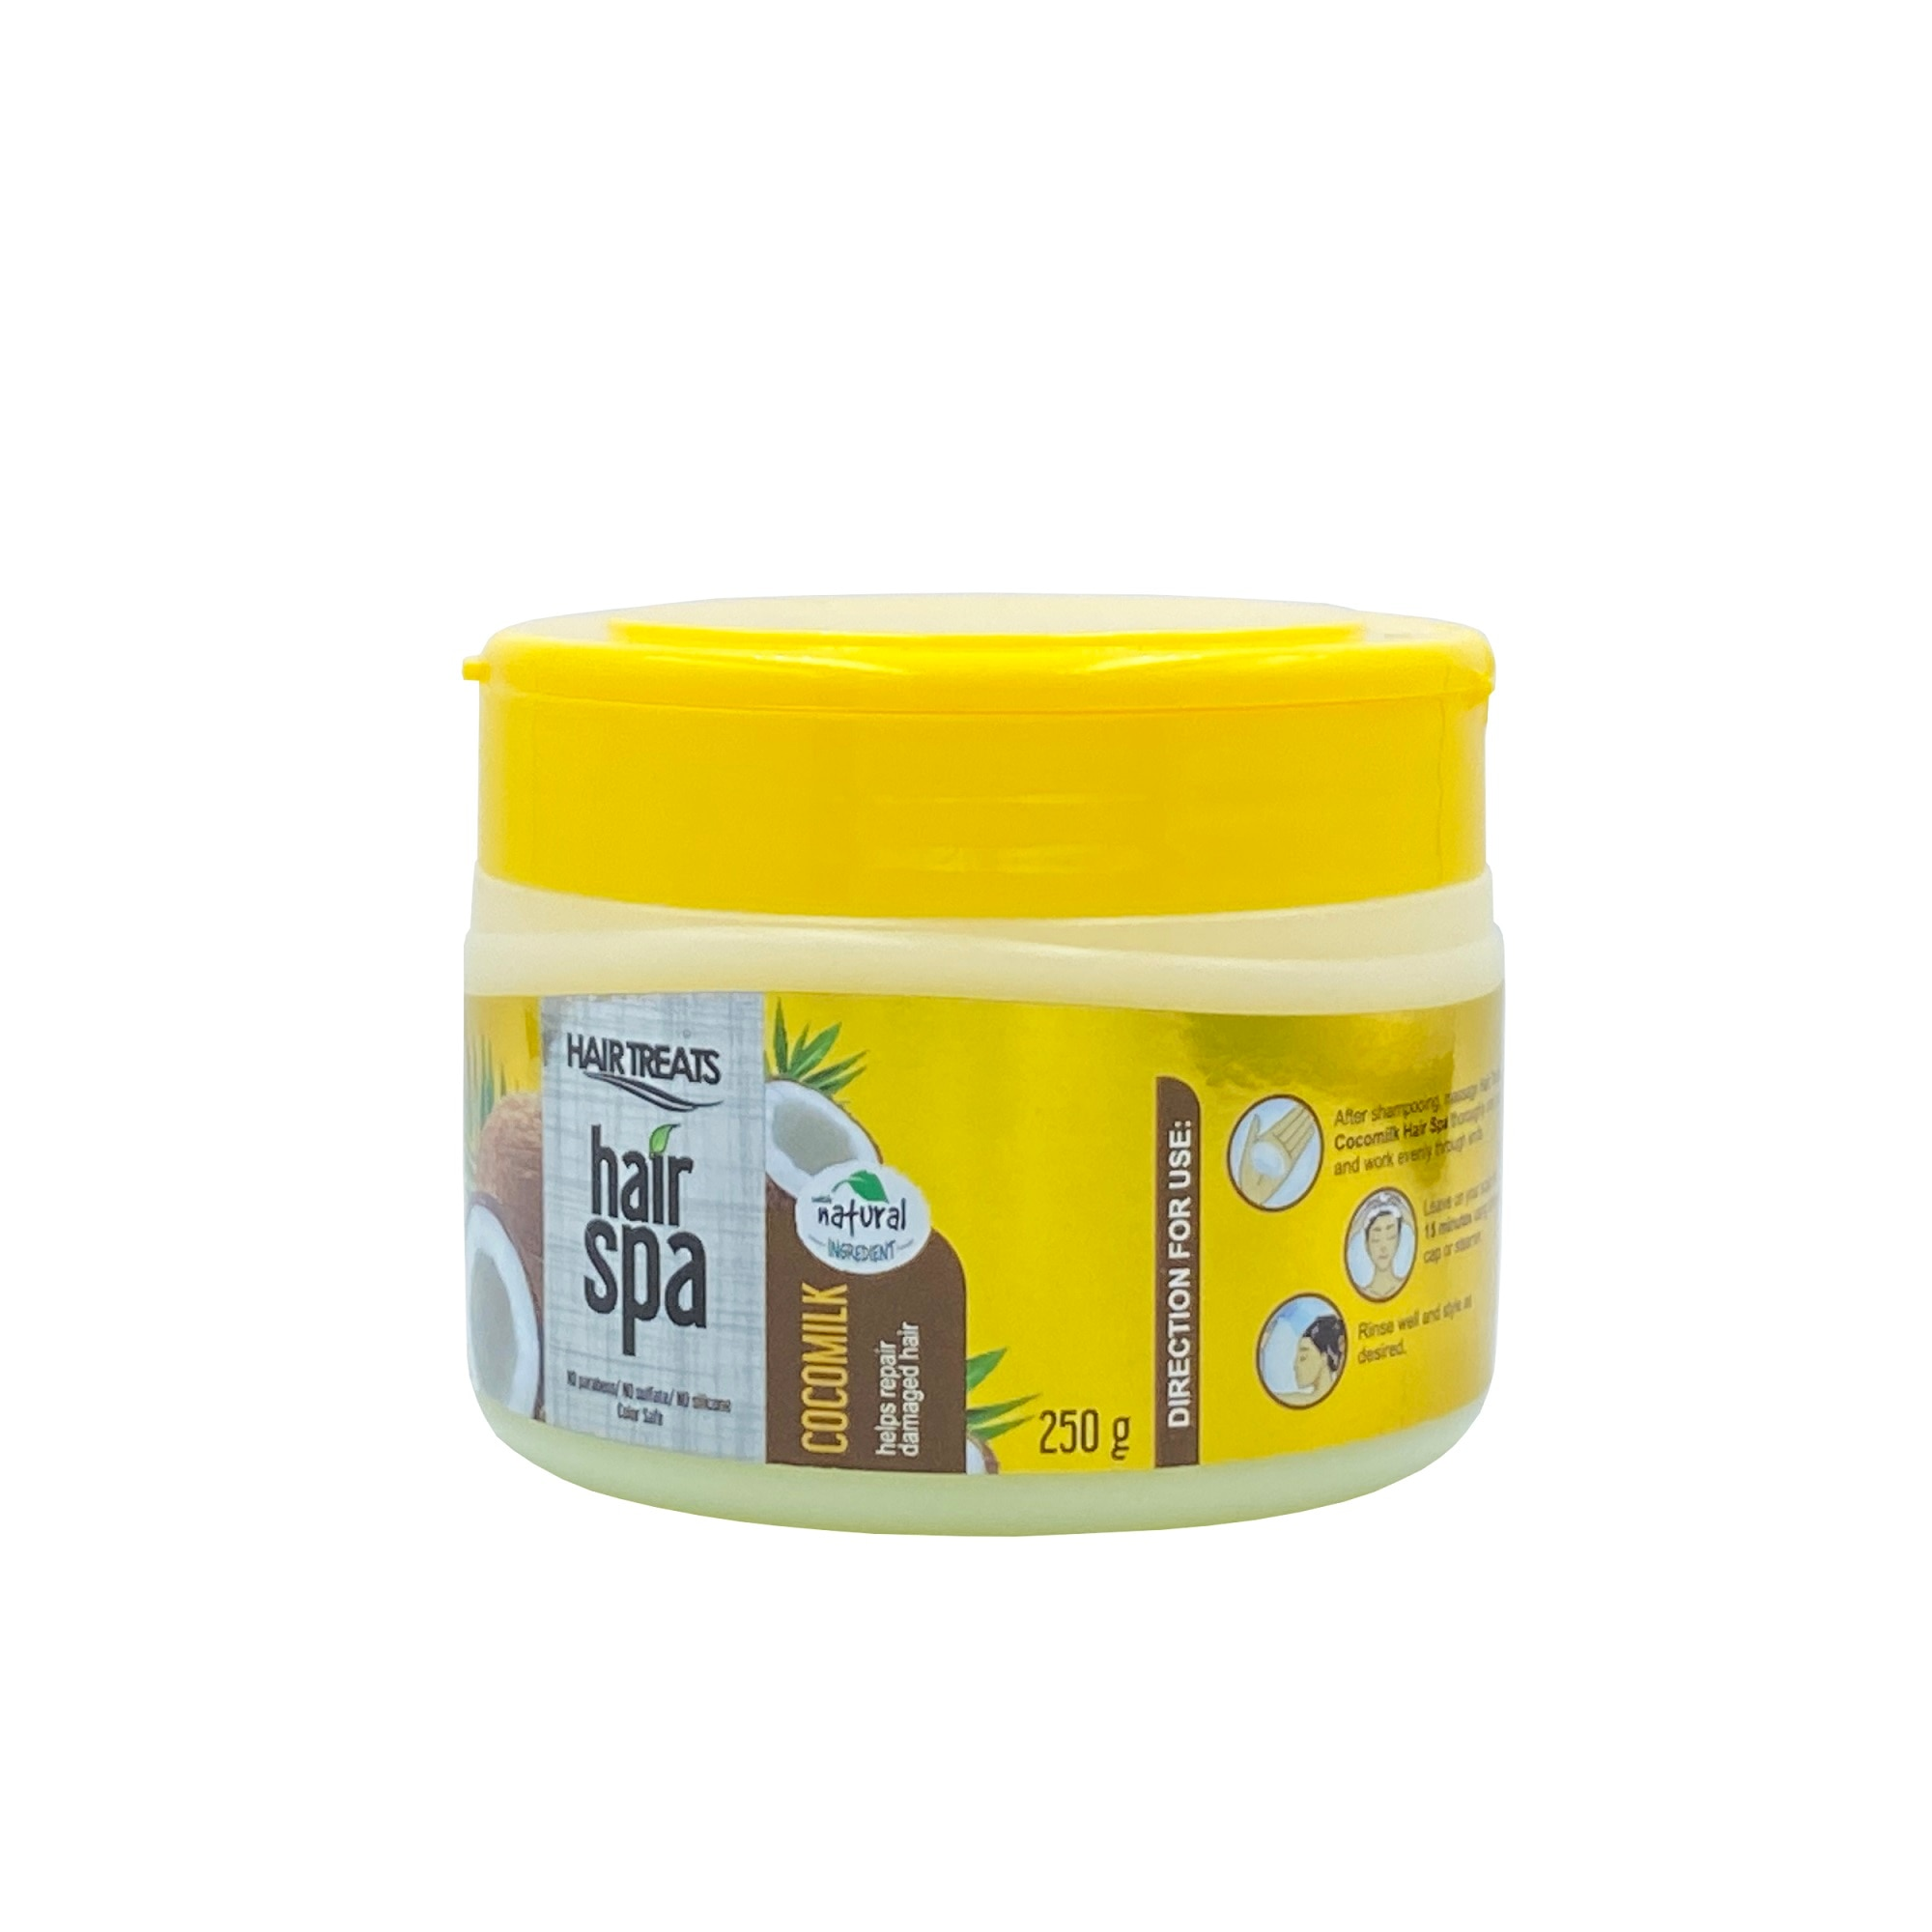 HAIR TREATSSilky Straight Hair Spa Coco Milk 250g,MasksWhat A Splash: All Products